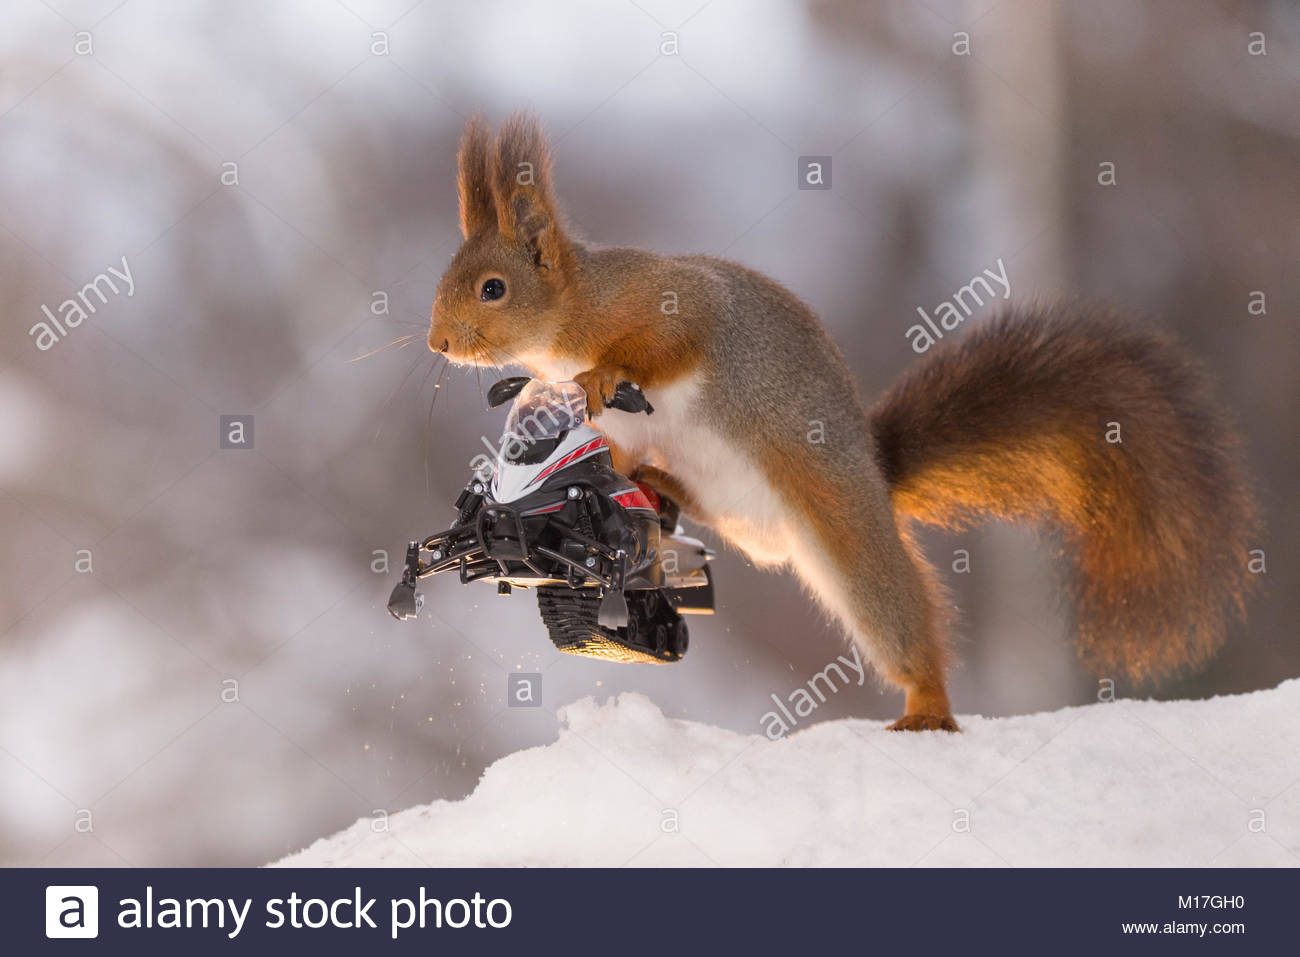 Red squirrel is holding a snowmobile - Stock Image